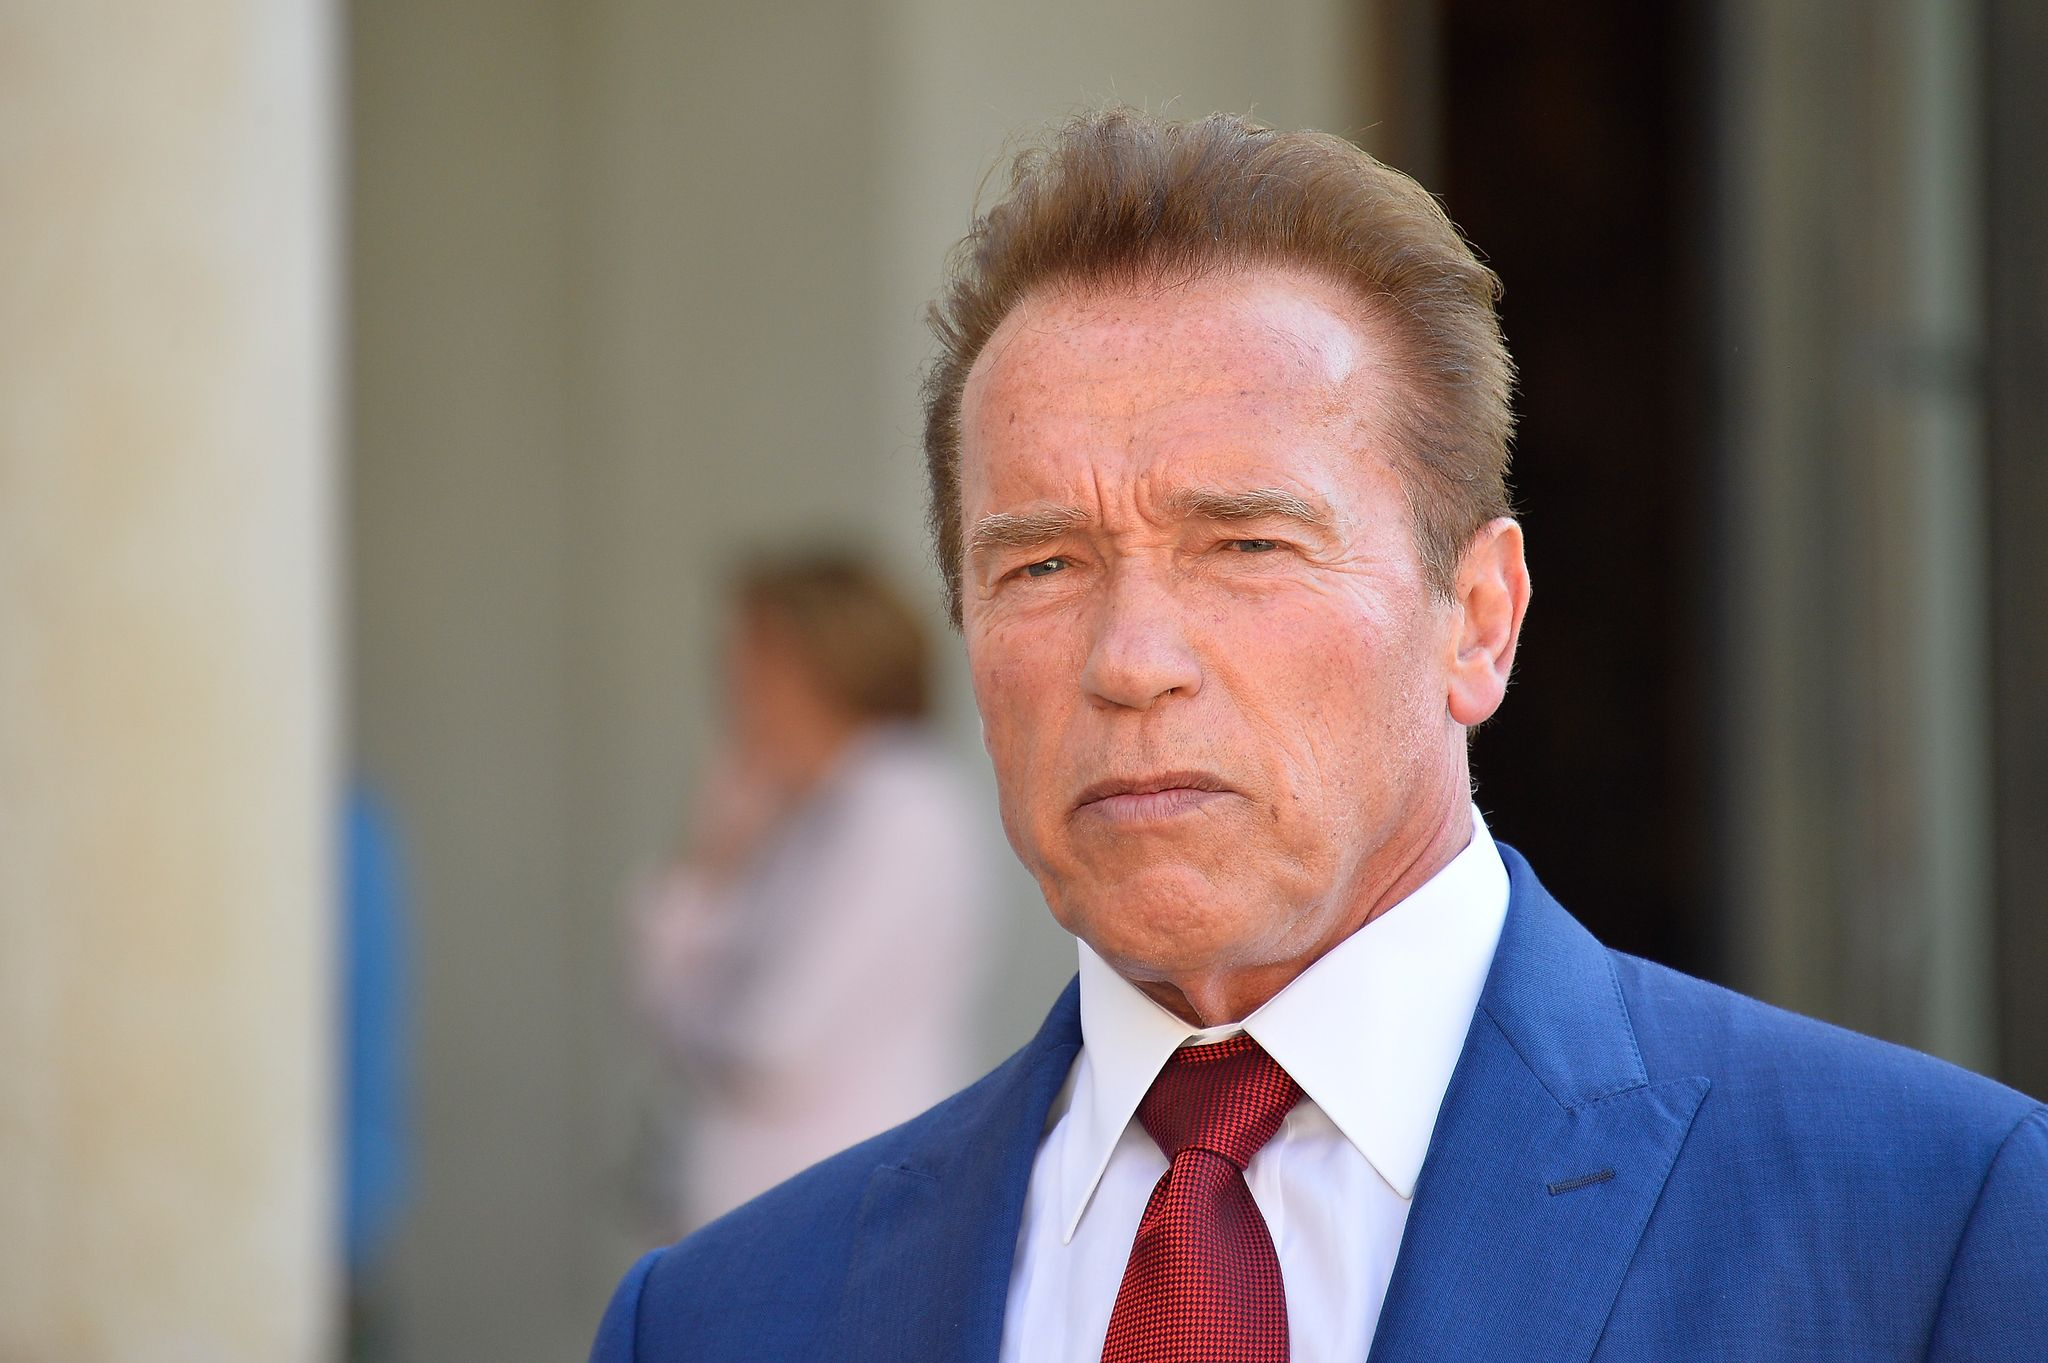 Arnold Schwarzenegger addresses the press as he leaves after meeting French President Emmanuel Macron at the Elysee Palace on June 23, 2017 | Photo: Getty Images